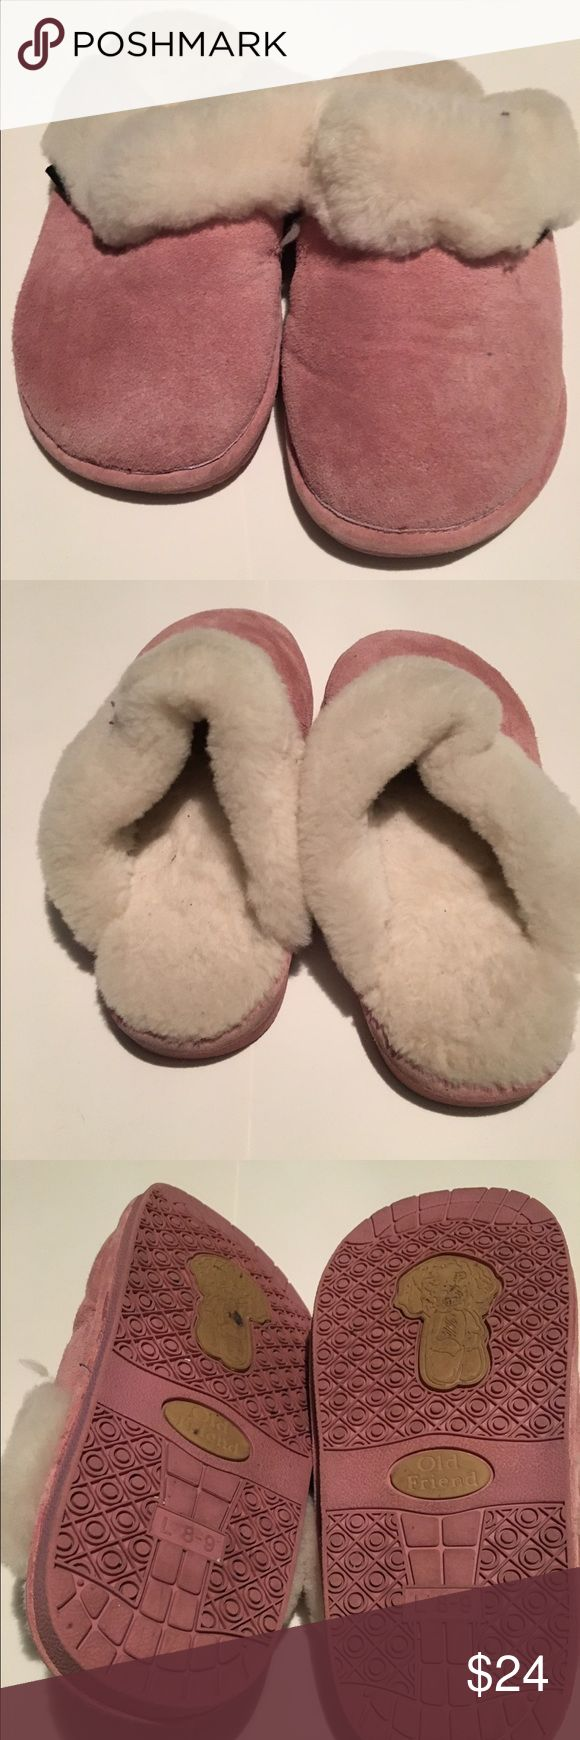 Old Friend Slippers..PINK Old Friend Woman's Slippers... light pink.. in amazing condition... only worn a few times inside the house.. sheep skin lined!! Super Super warm! old friend Shoes Slippers